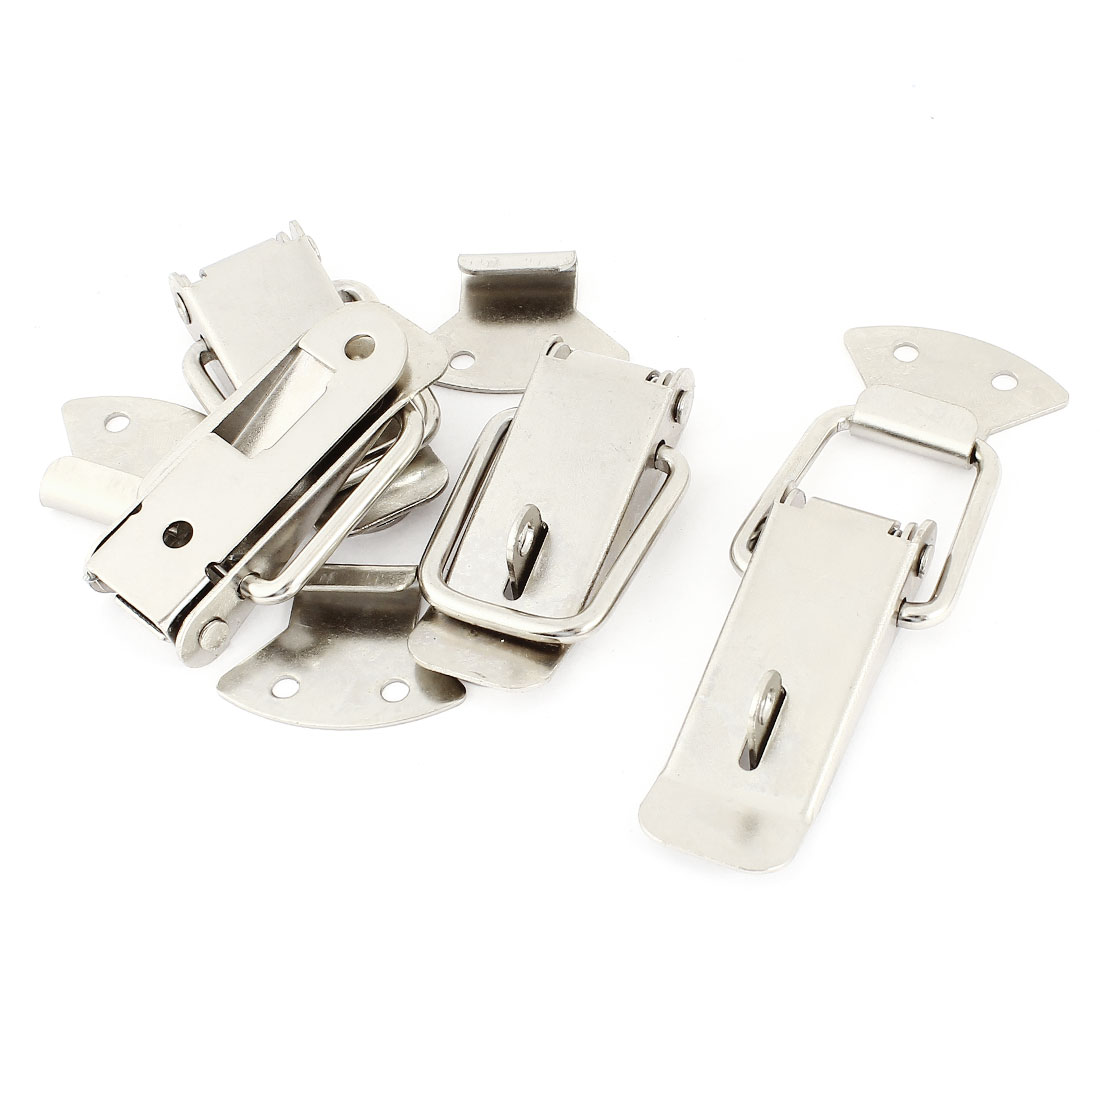 4 Sets 4mm Bore Diameter Stainless Steel Door Lock Hasp Toggle Latches